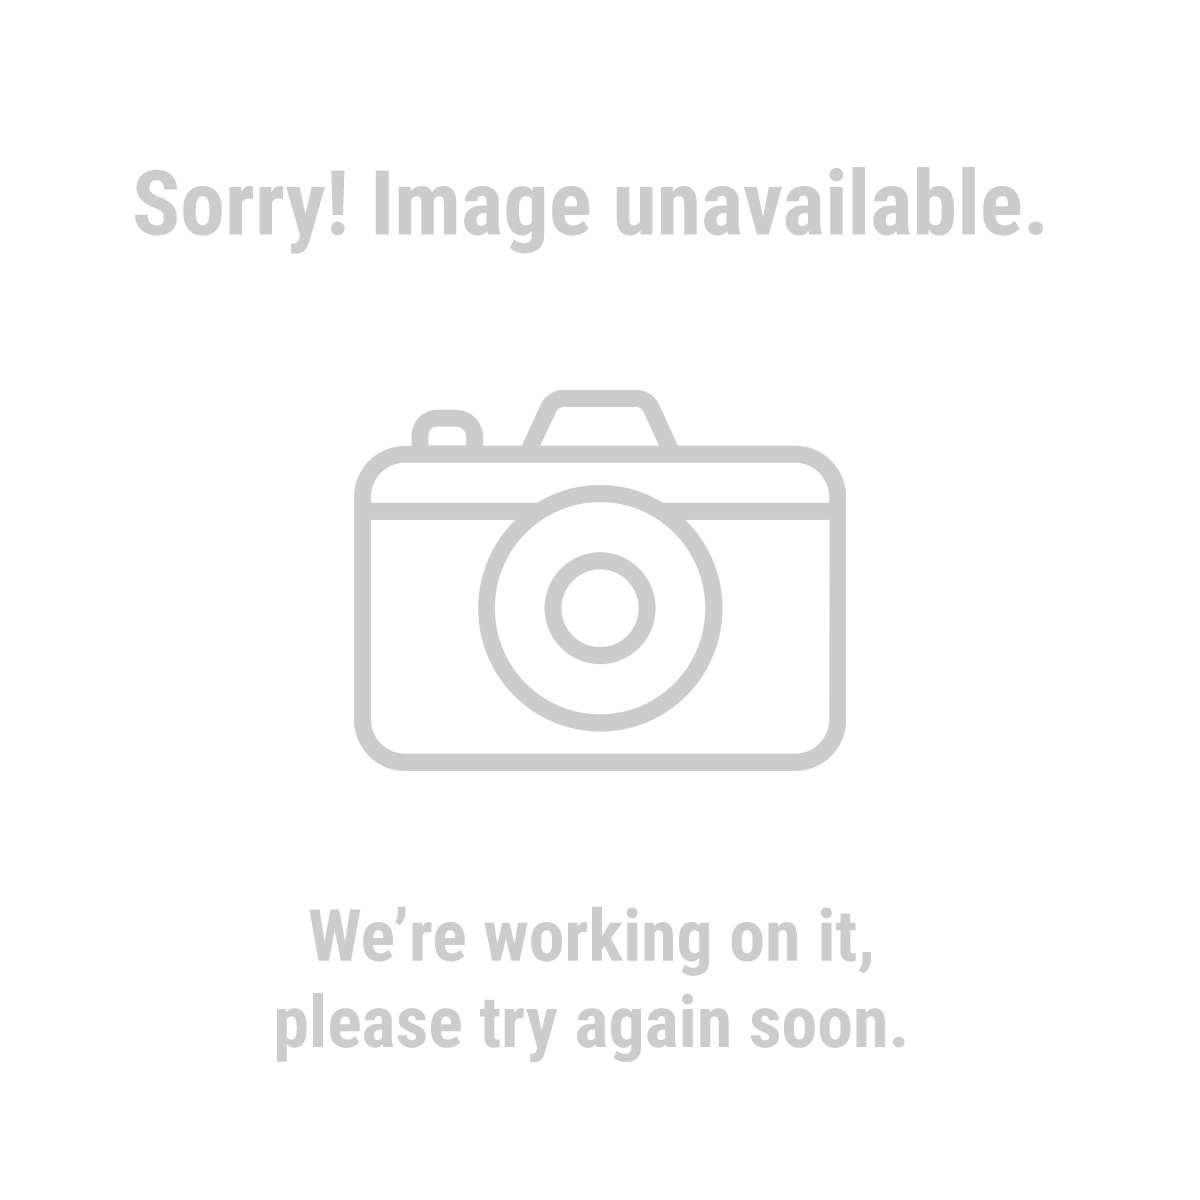 Chicago Electric Welding Systems 68885 170 Amp MIG/Flux Wire Welder